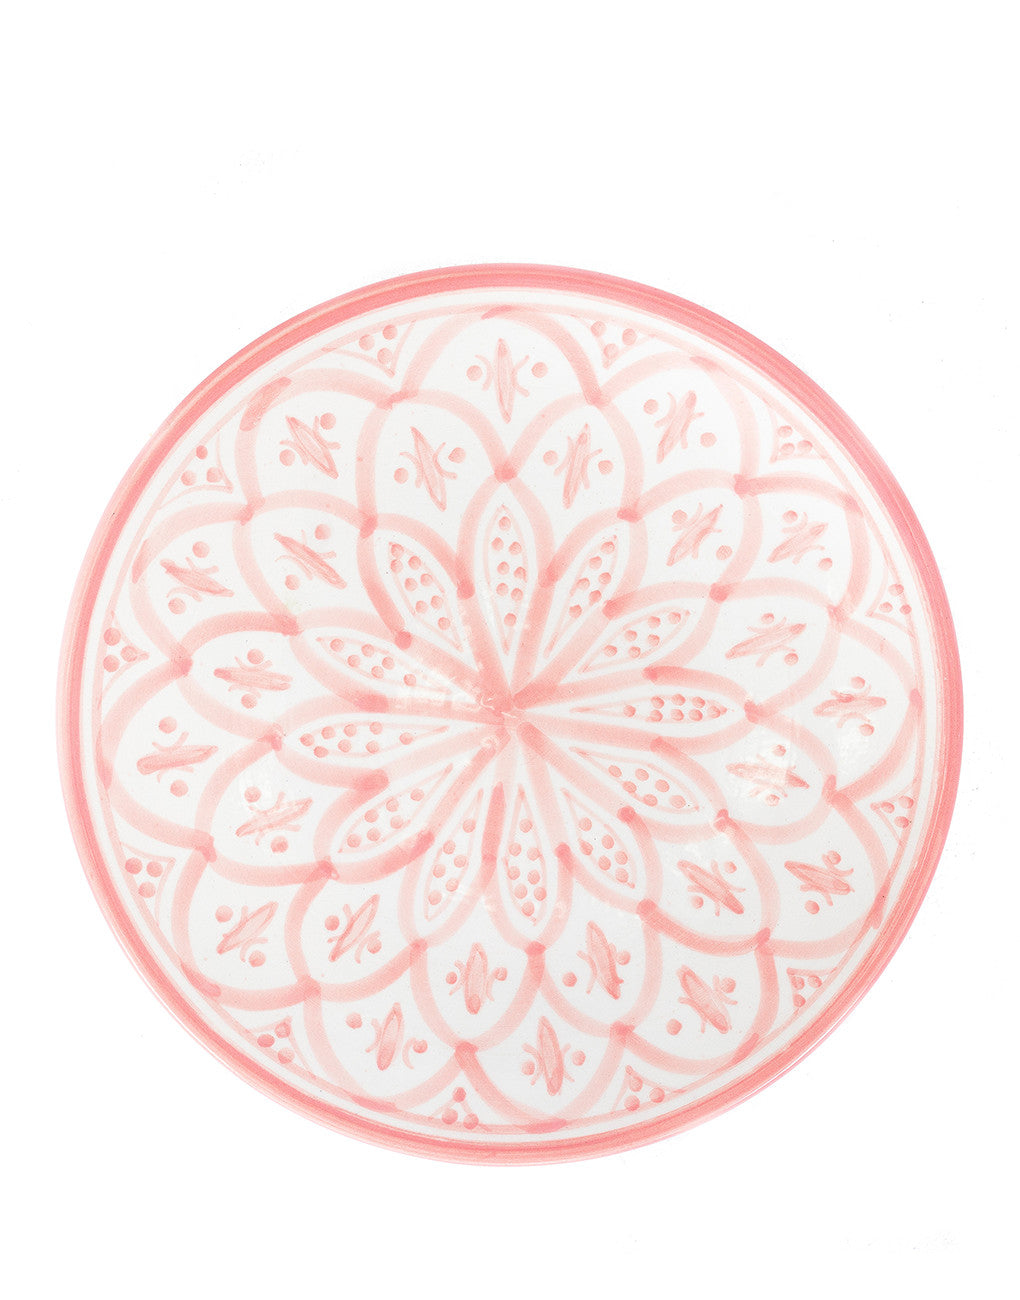 Fair Trade Handmade blush pink ceramic dinner plate ...  sc 1 st  The Little Market & Ceramic Dinner Plate - Blush | Fair Trade | The Little Market